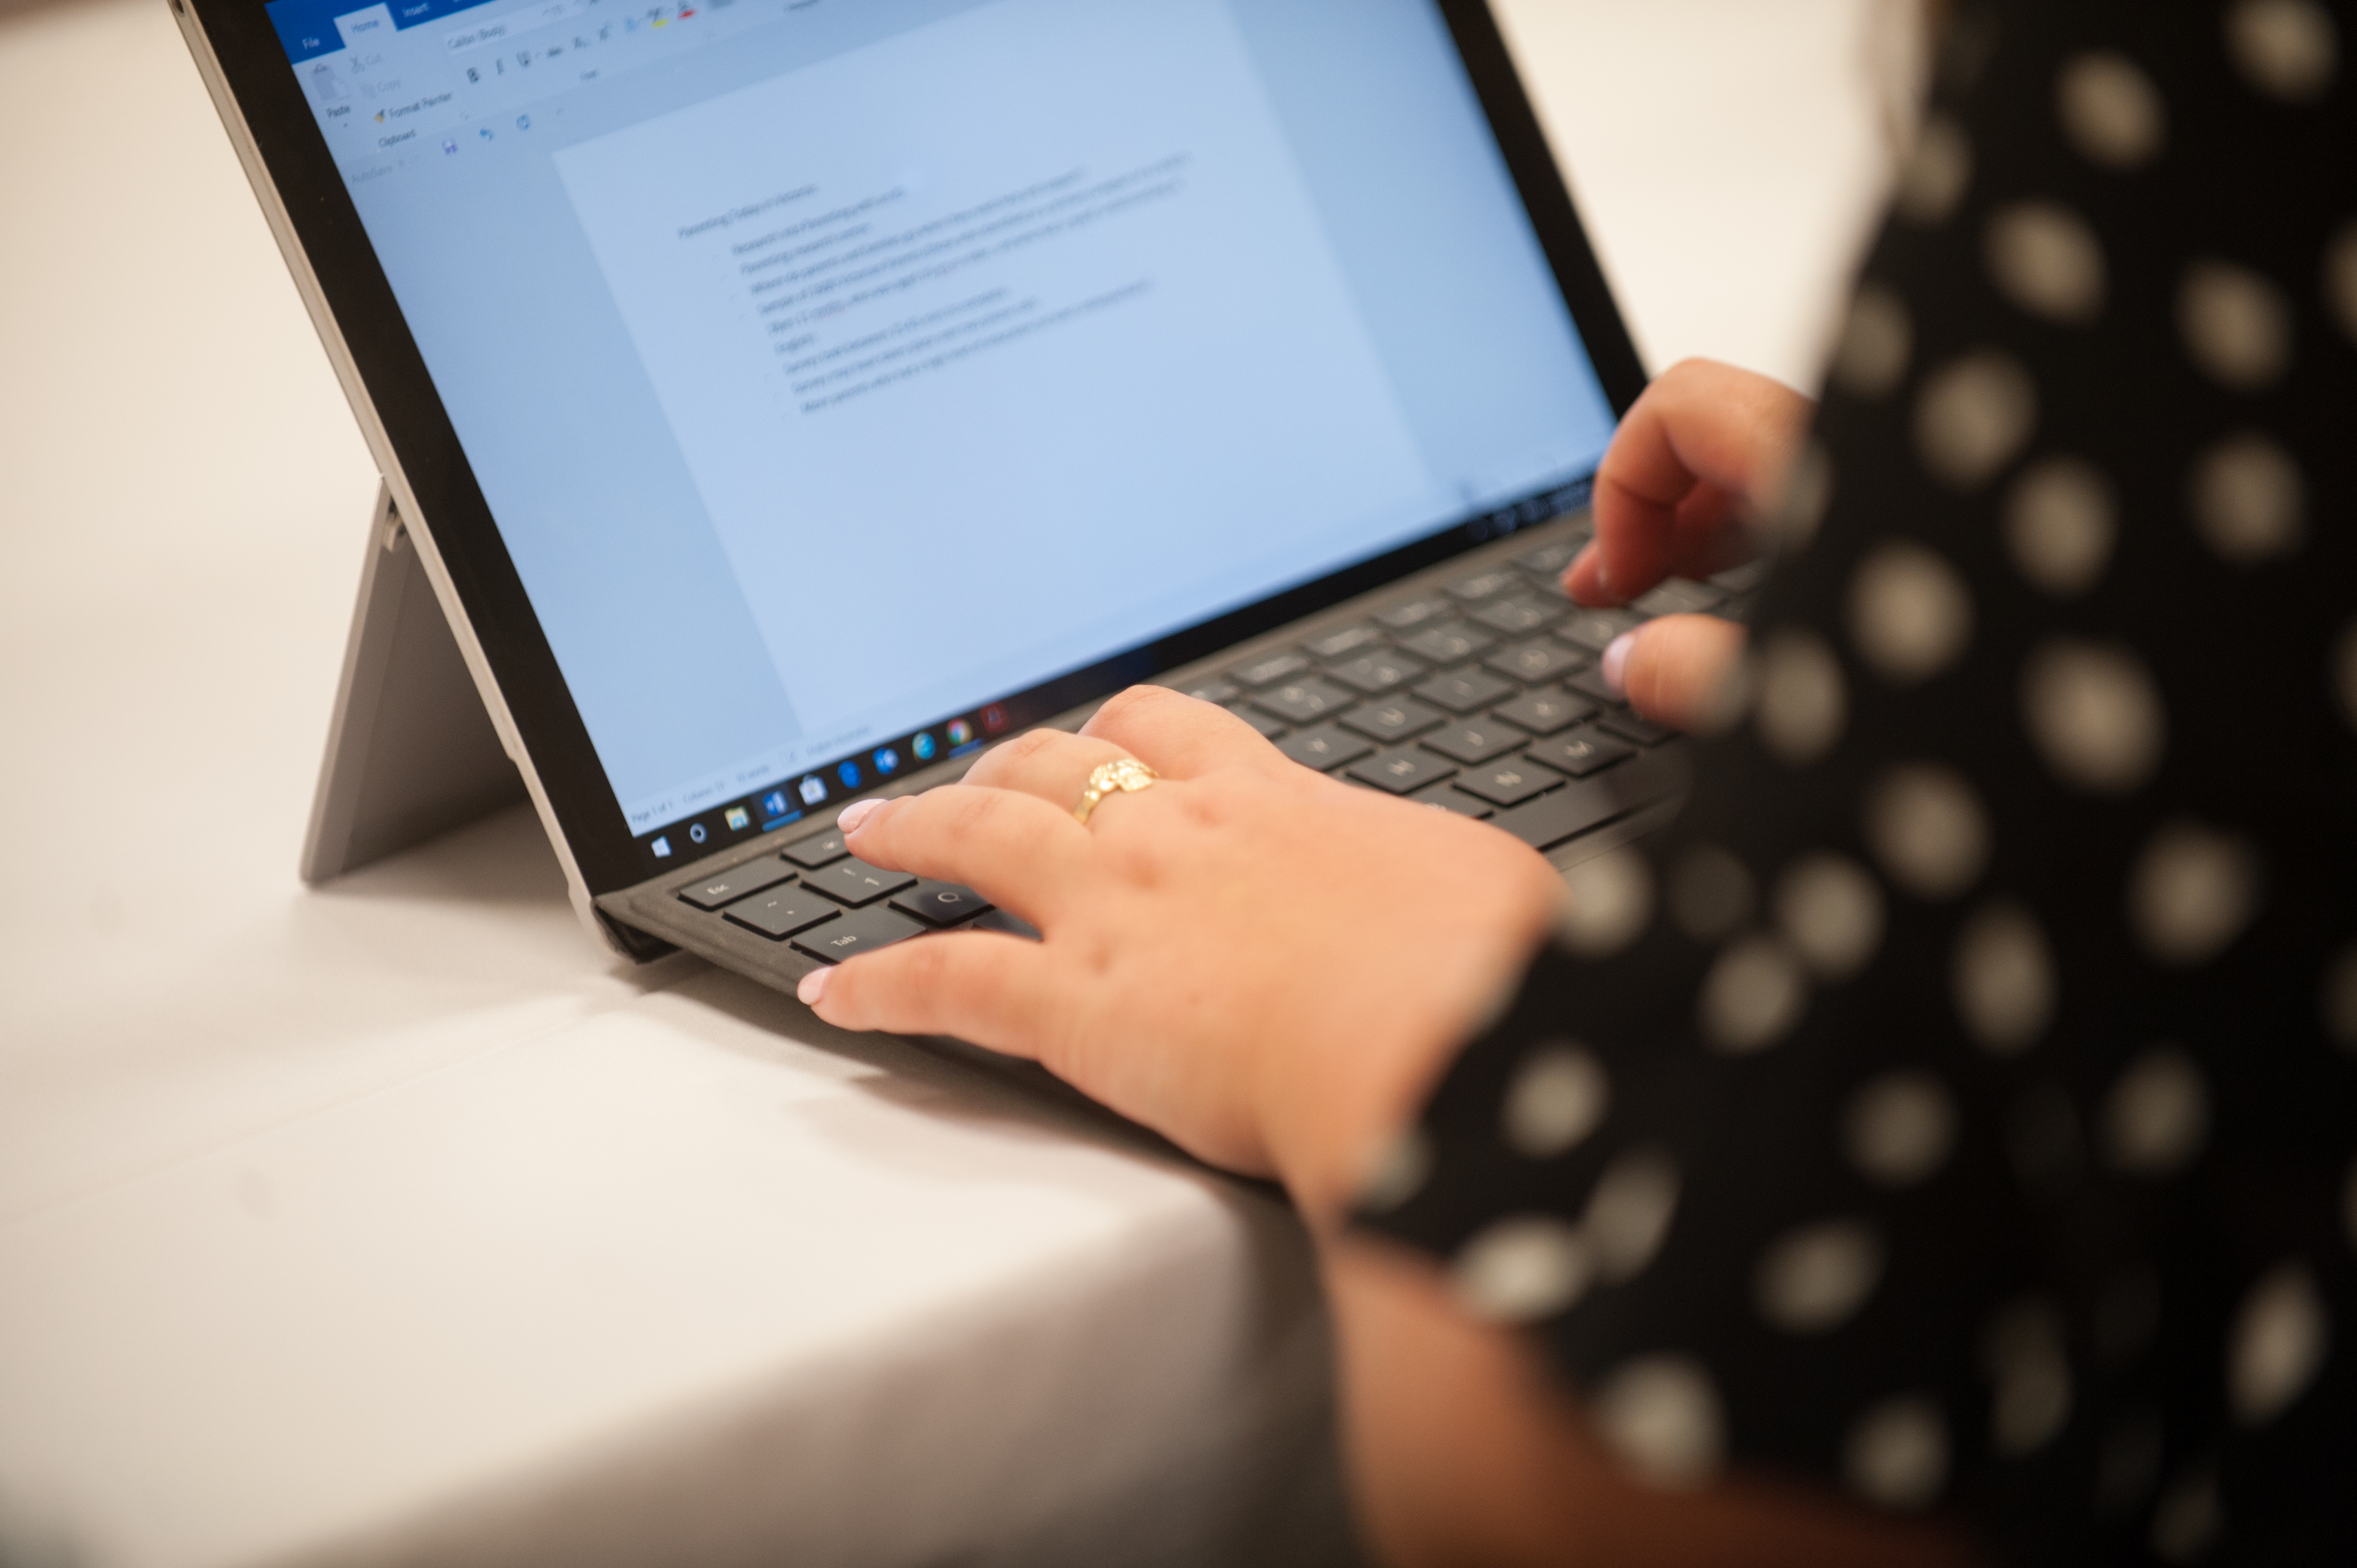 Close up of a lady's hands typing on a laptop